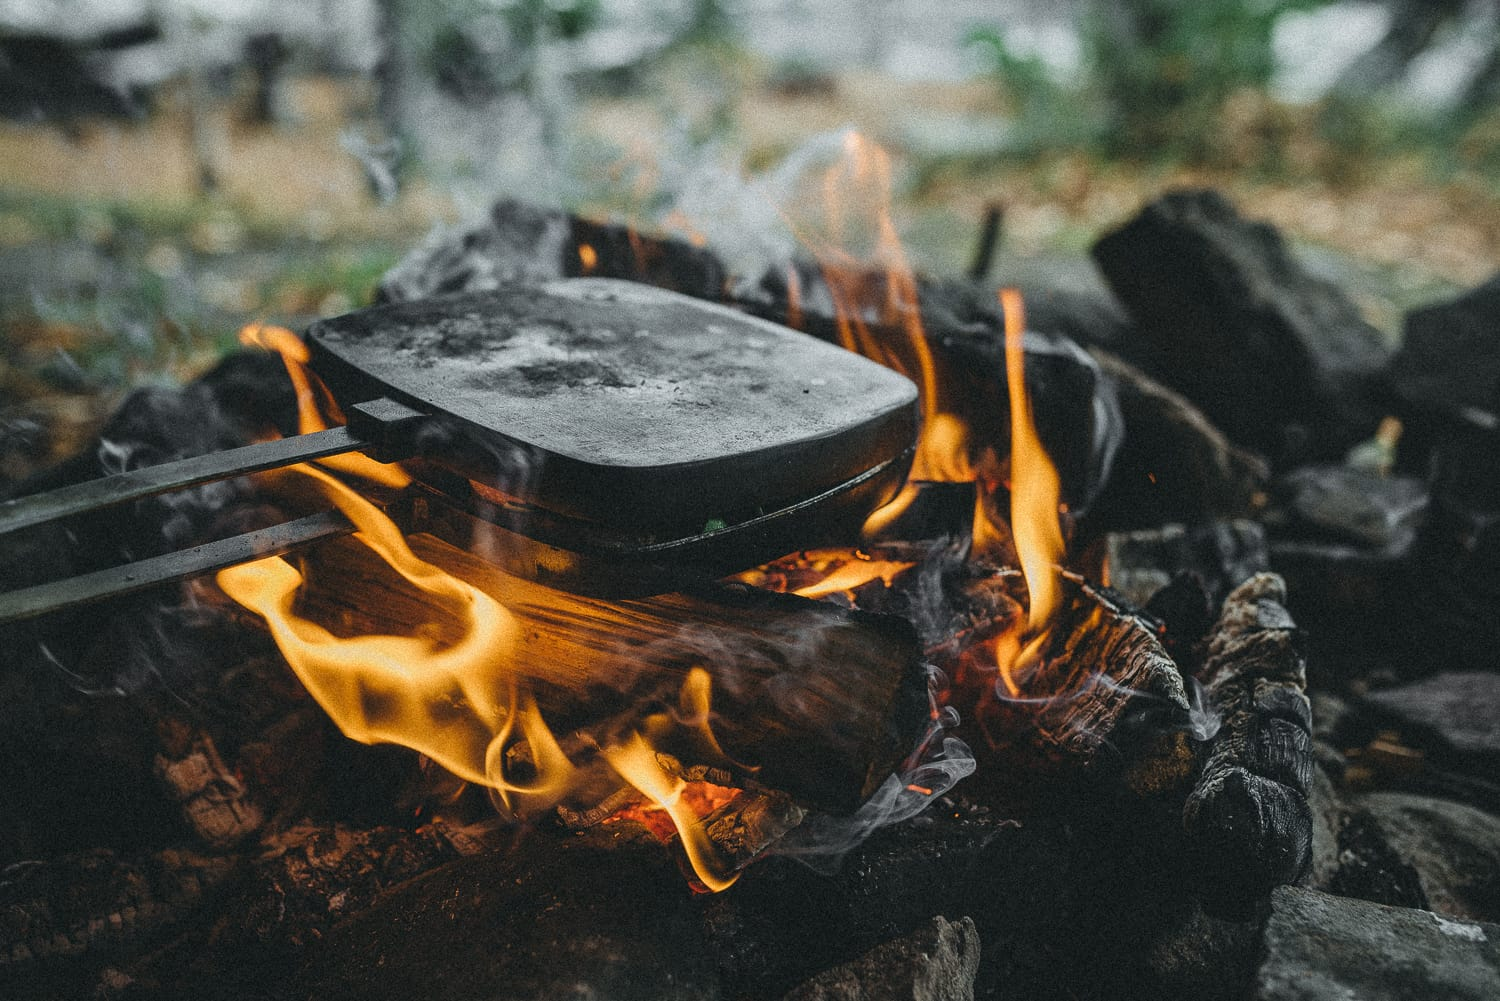 making grilled sandwiches over an open fire